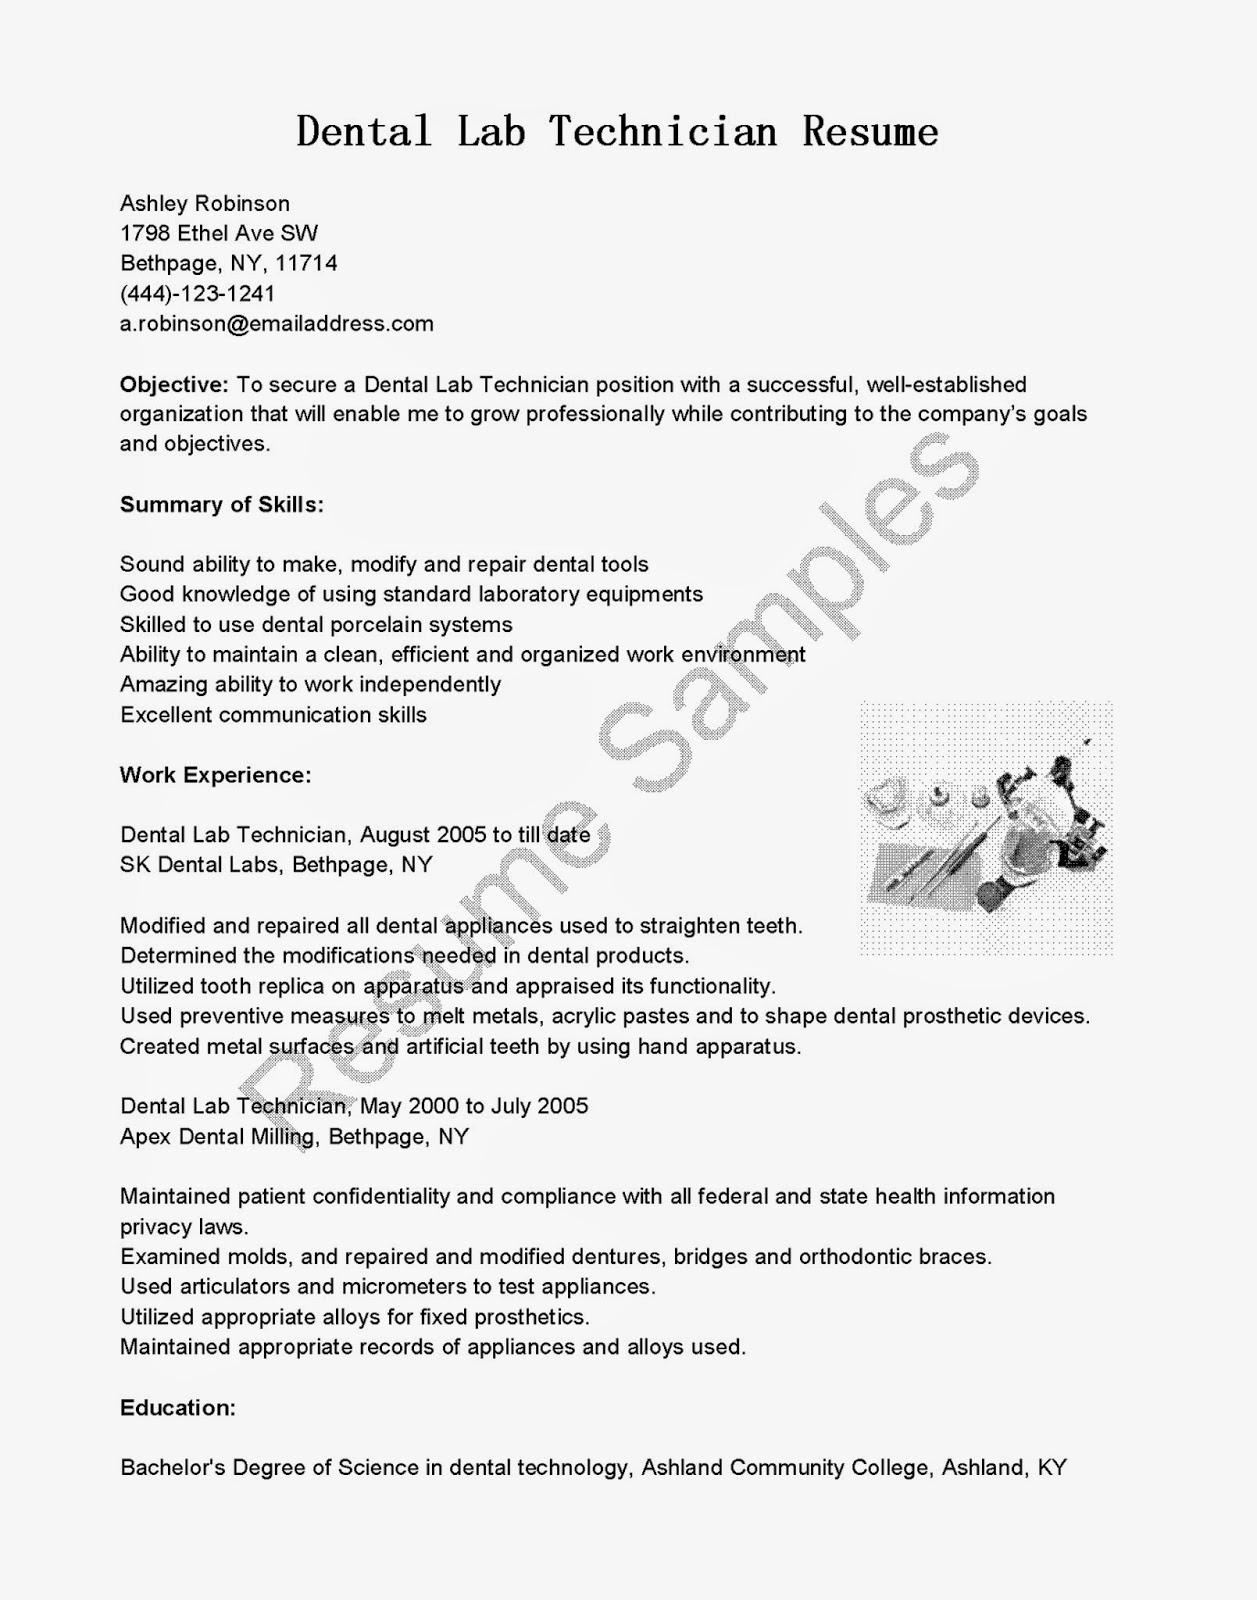 Automotive Technician Cover Letter Gallery - Cover Letter Ideas